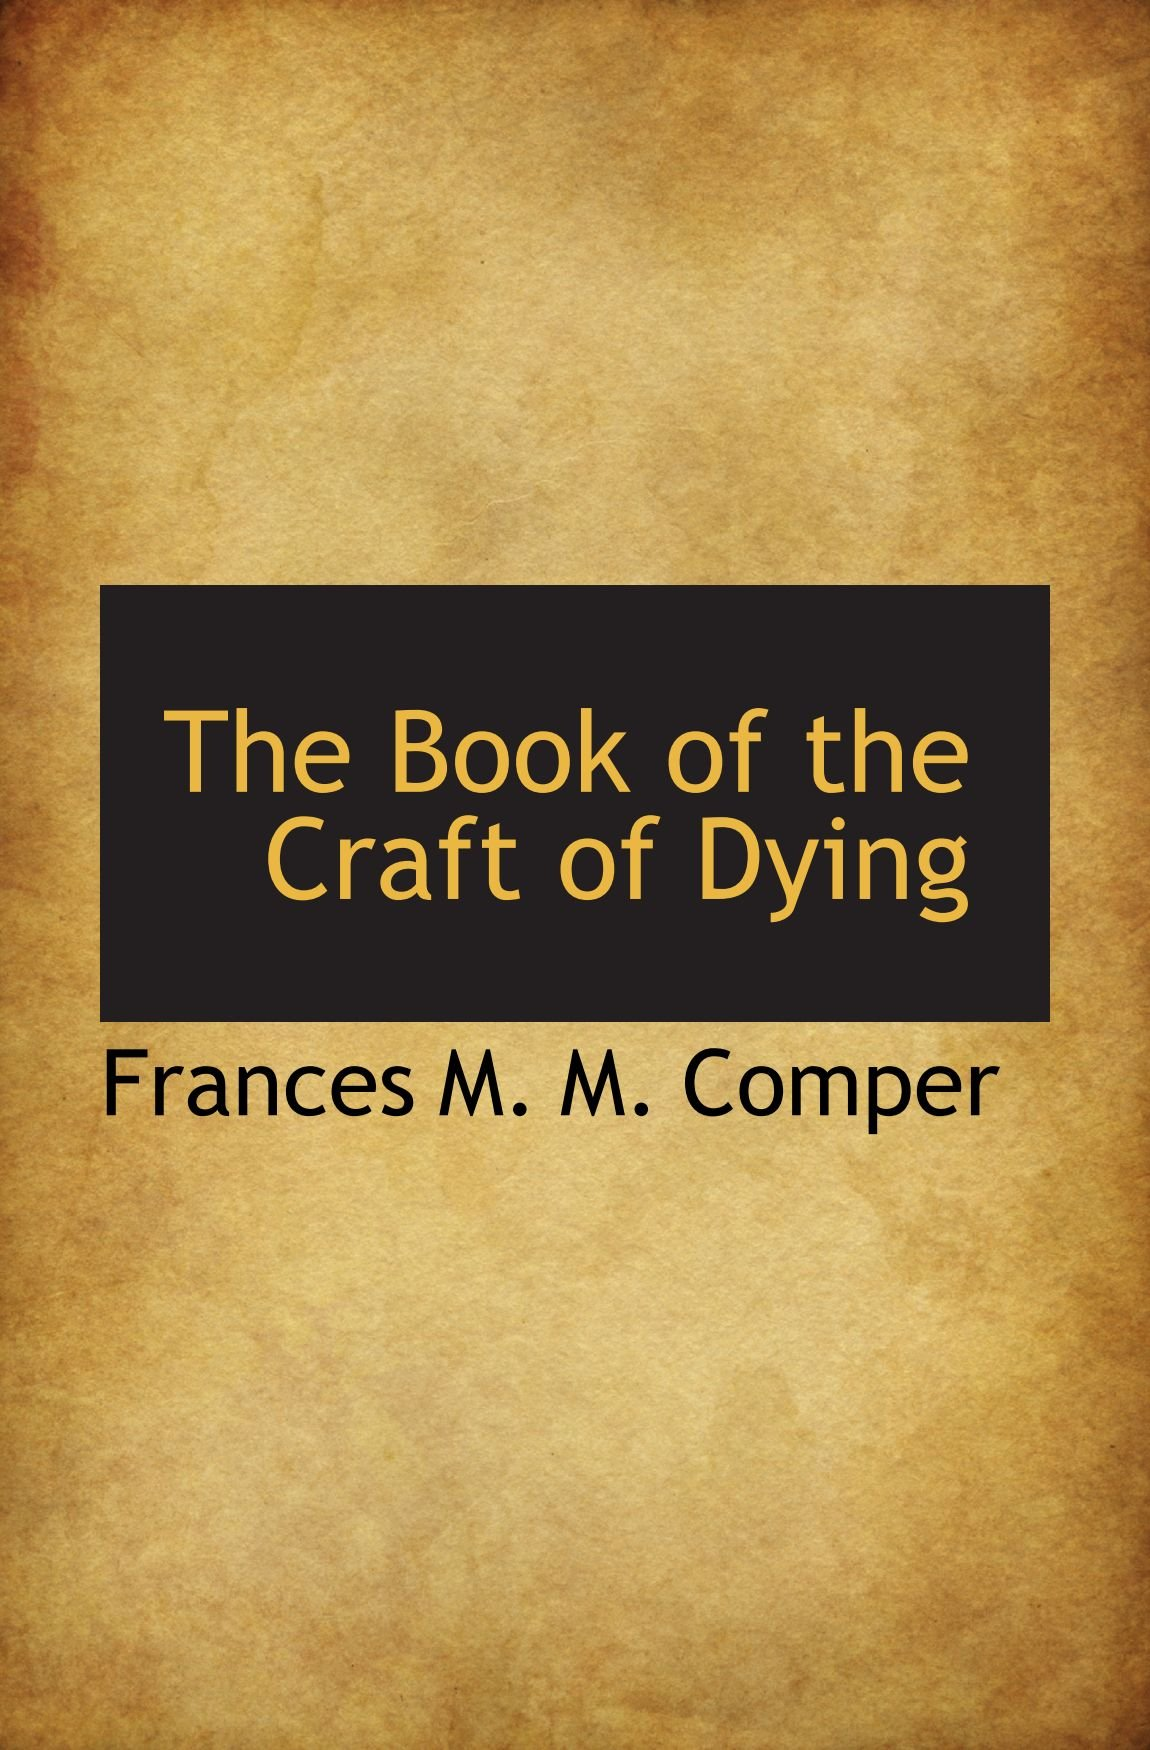 The Book of the Craft of Dying PDF